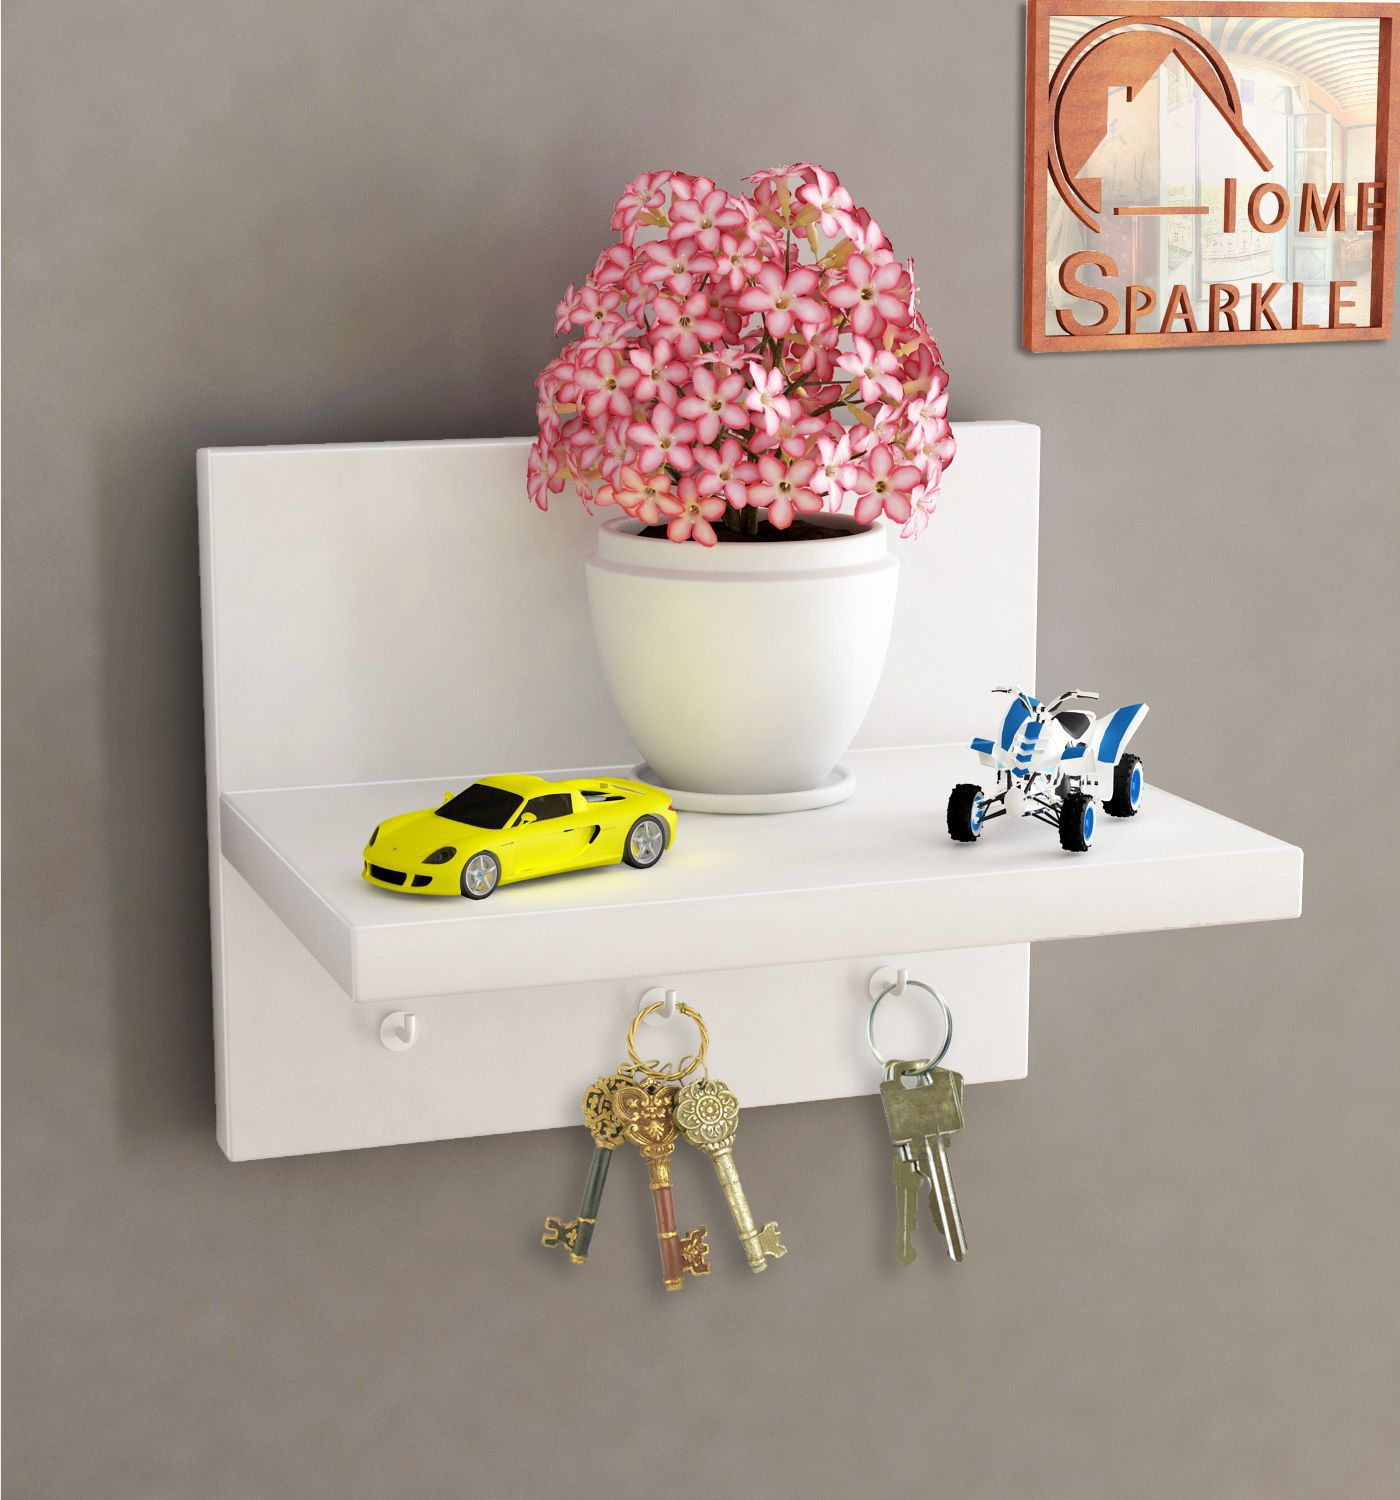 Home Sparkle MDF Wall Shelf Cum Key holder For Wall Décor  Suitable For Living Room/Bed Room  Designed By Craftsman